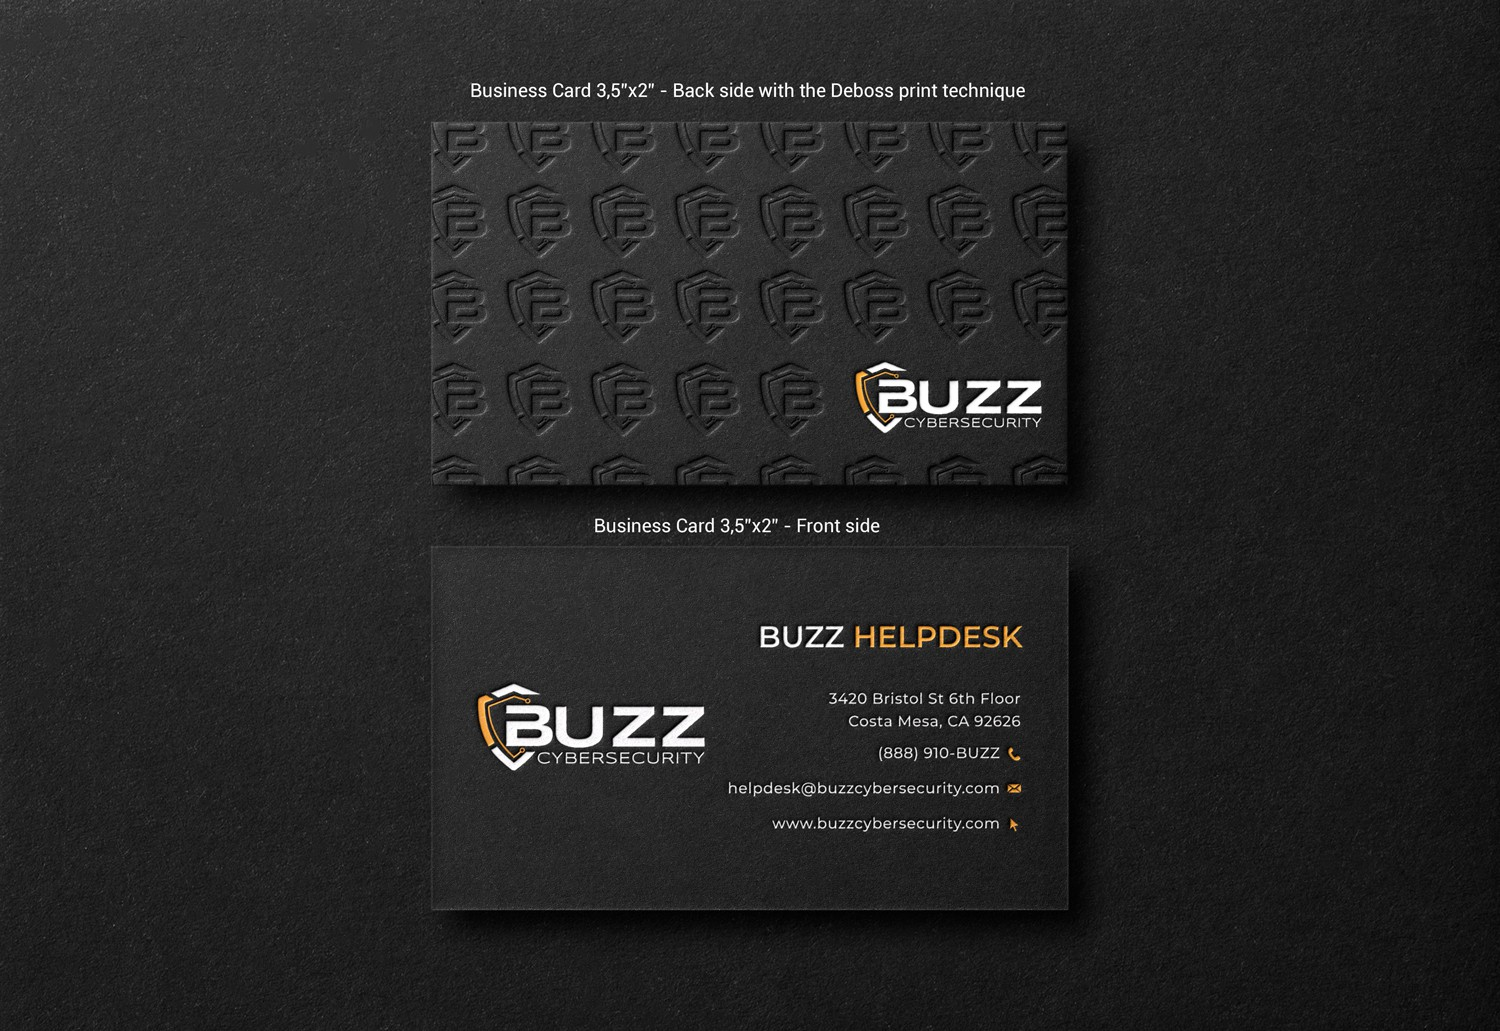 Buzz Cybersecurity New Business Card Design